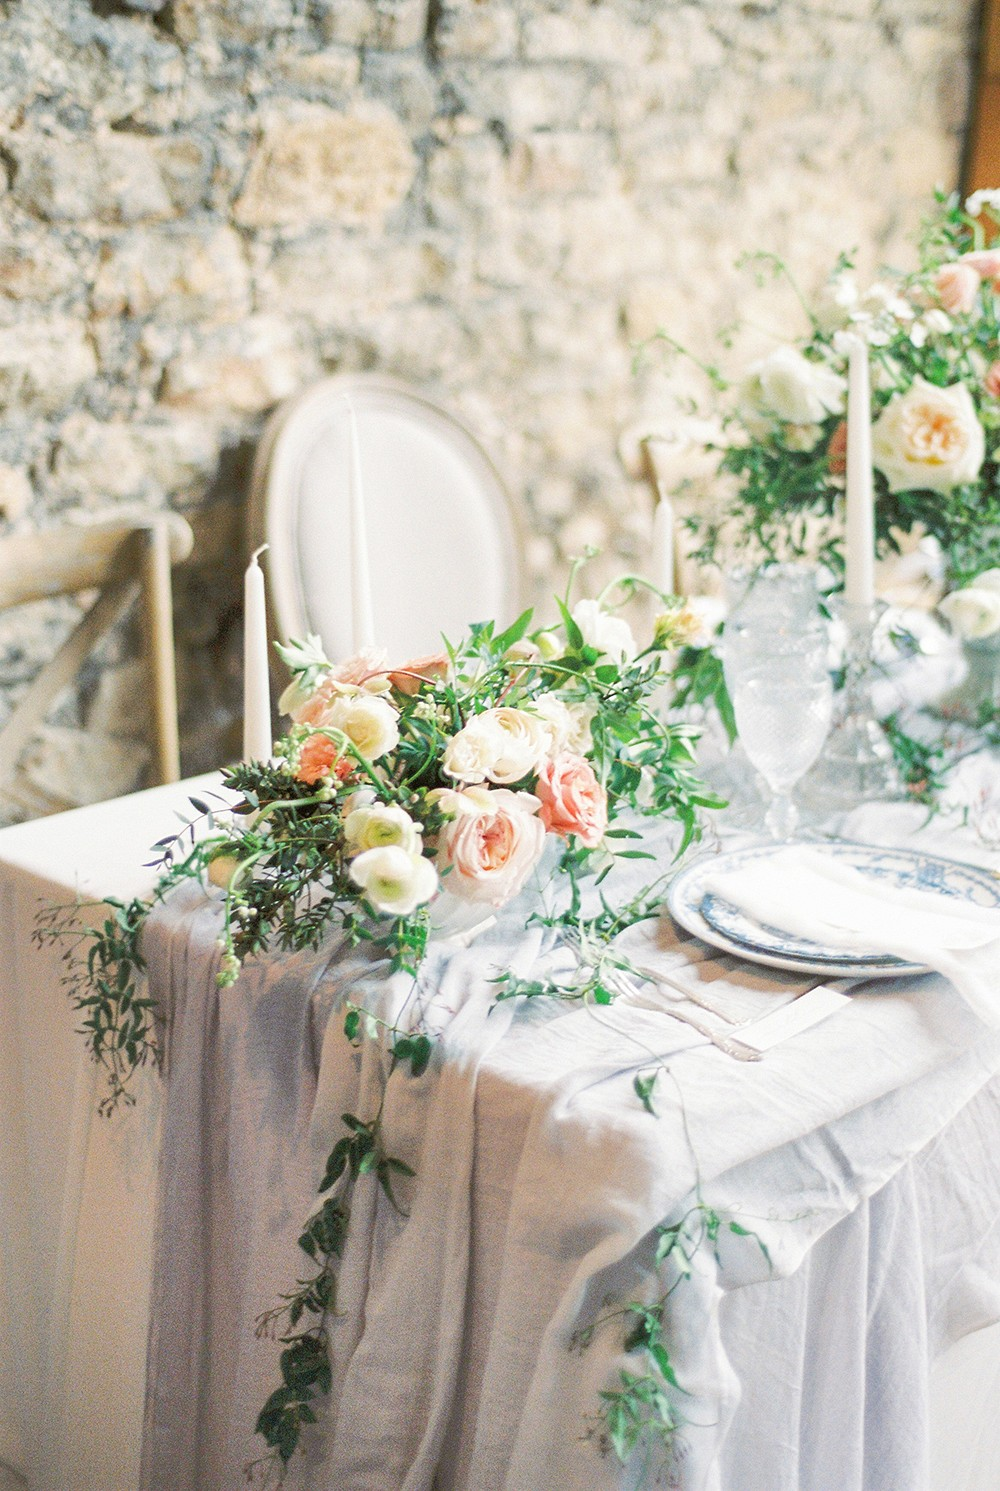 Pale Peach and Light Periwinkle Bridal Inspiration